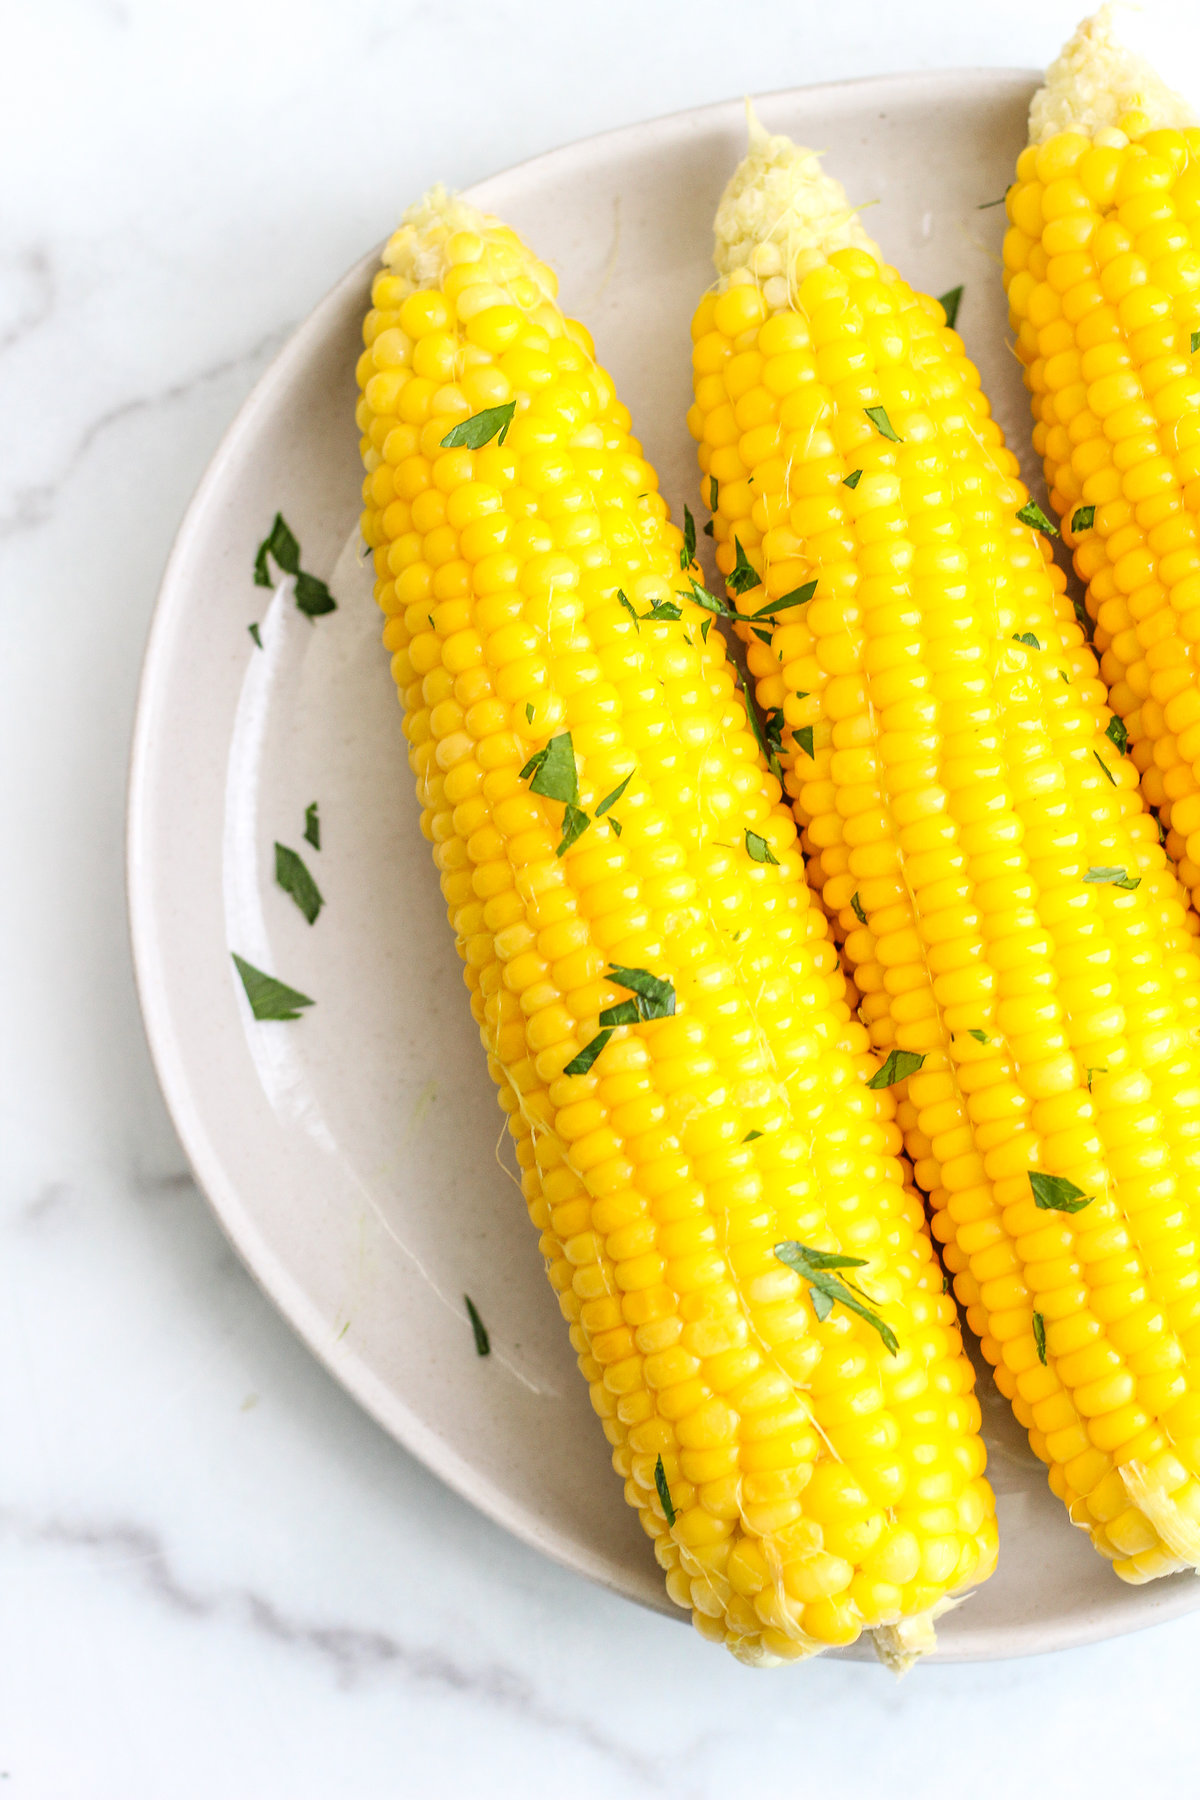 Bright yellow corn on the cob topped with butter and parsley on a plate